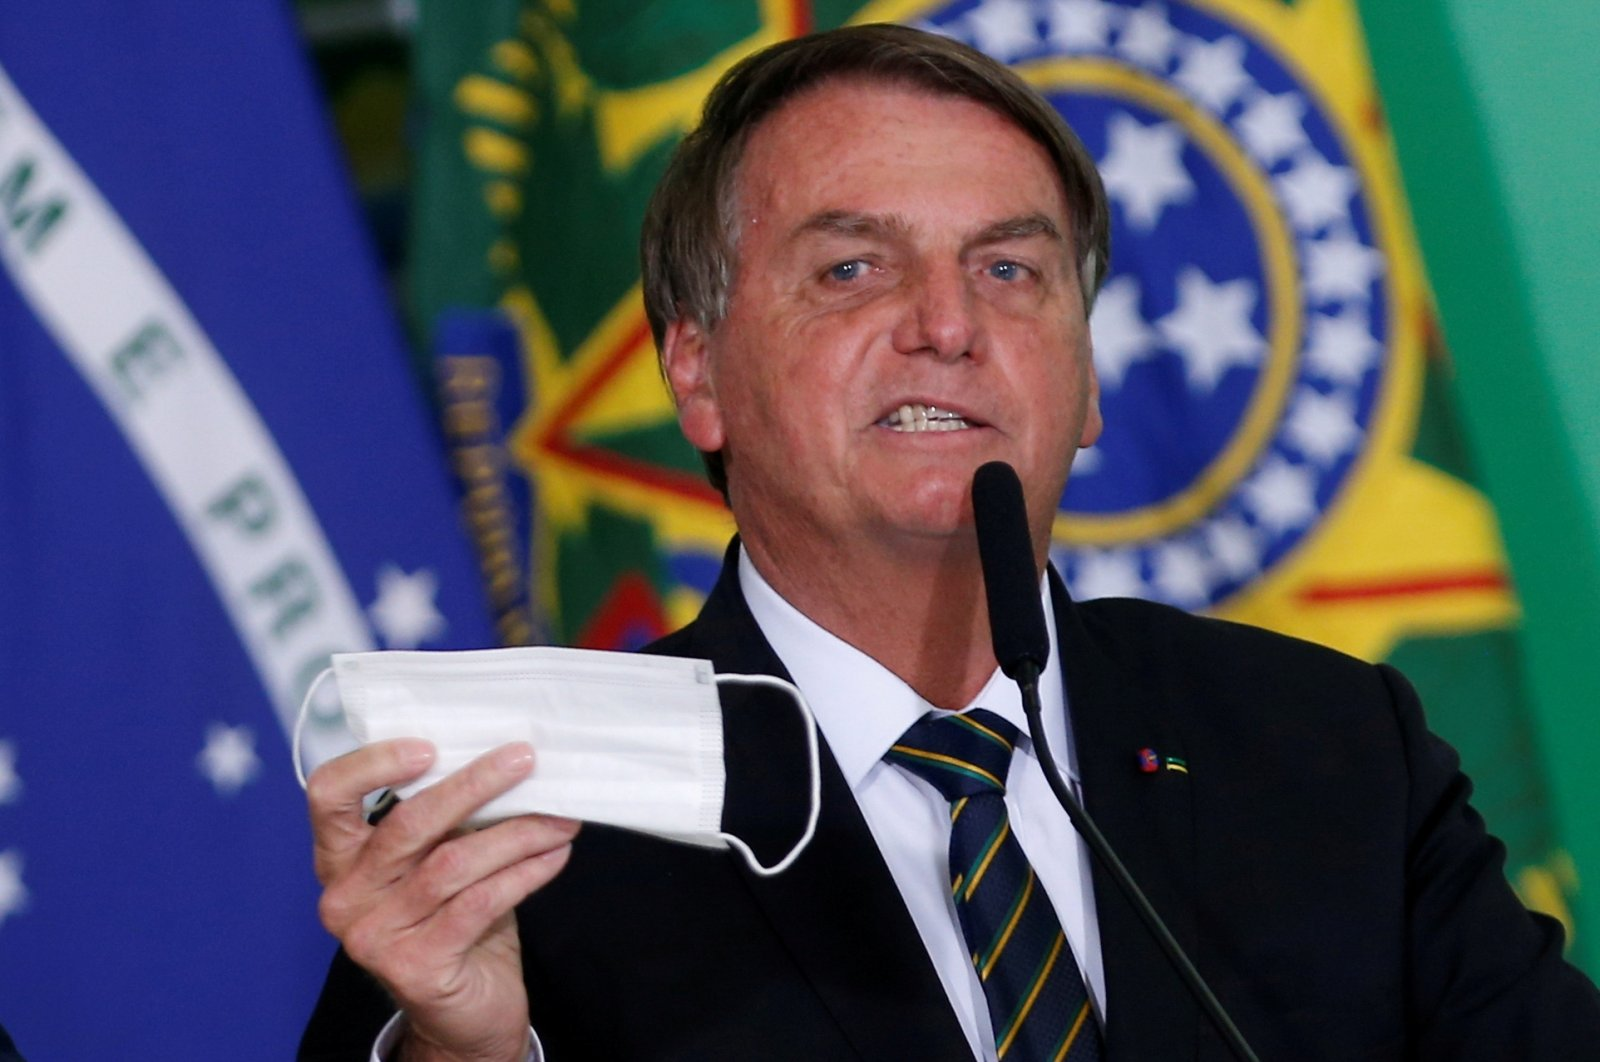 Brazil's President Jair Bolsonaro holds his protective face mask during a ceremony at the Planalto Palace, amid the coronavirus pandemic, in Brasilia, Brazil, June 10, 2021. (Reuters Photo)